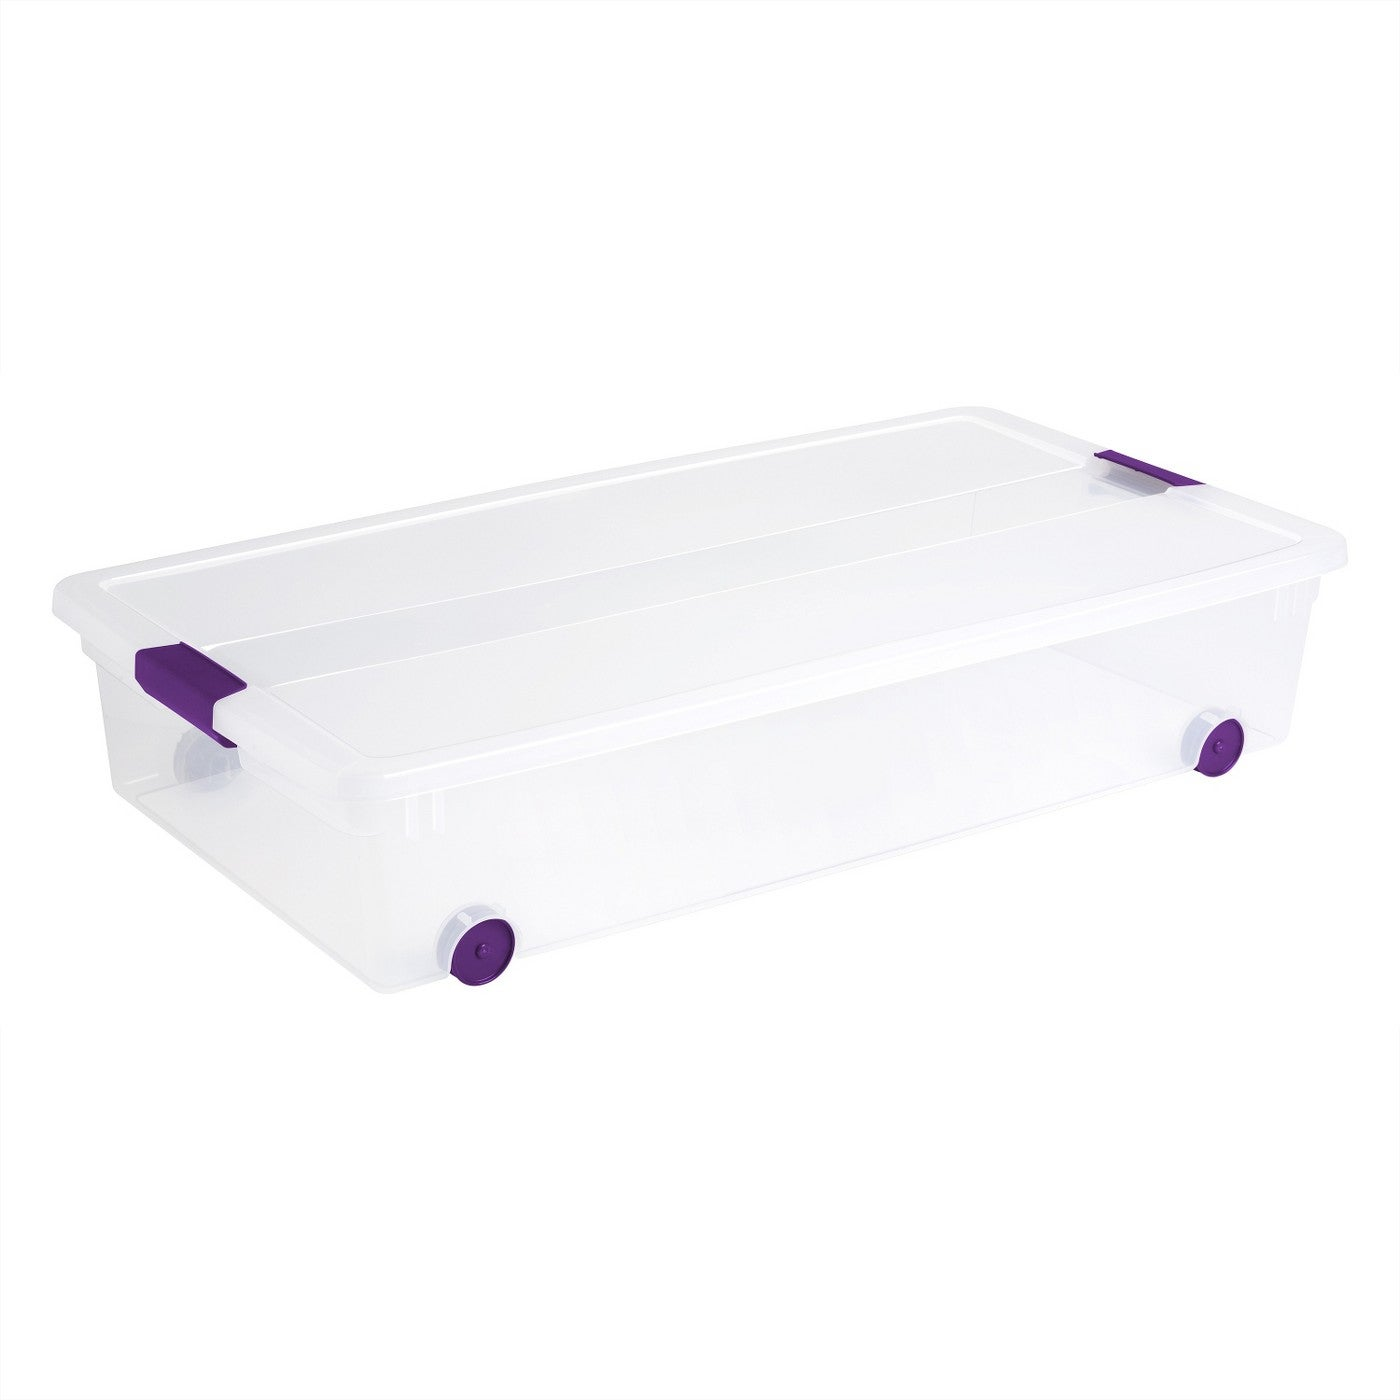 Best Under Bed Storage Containers Drawers Bins Ideas